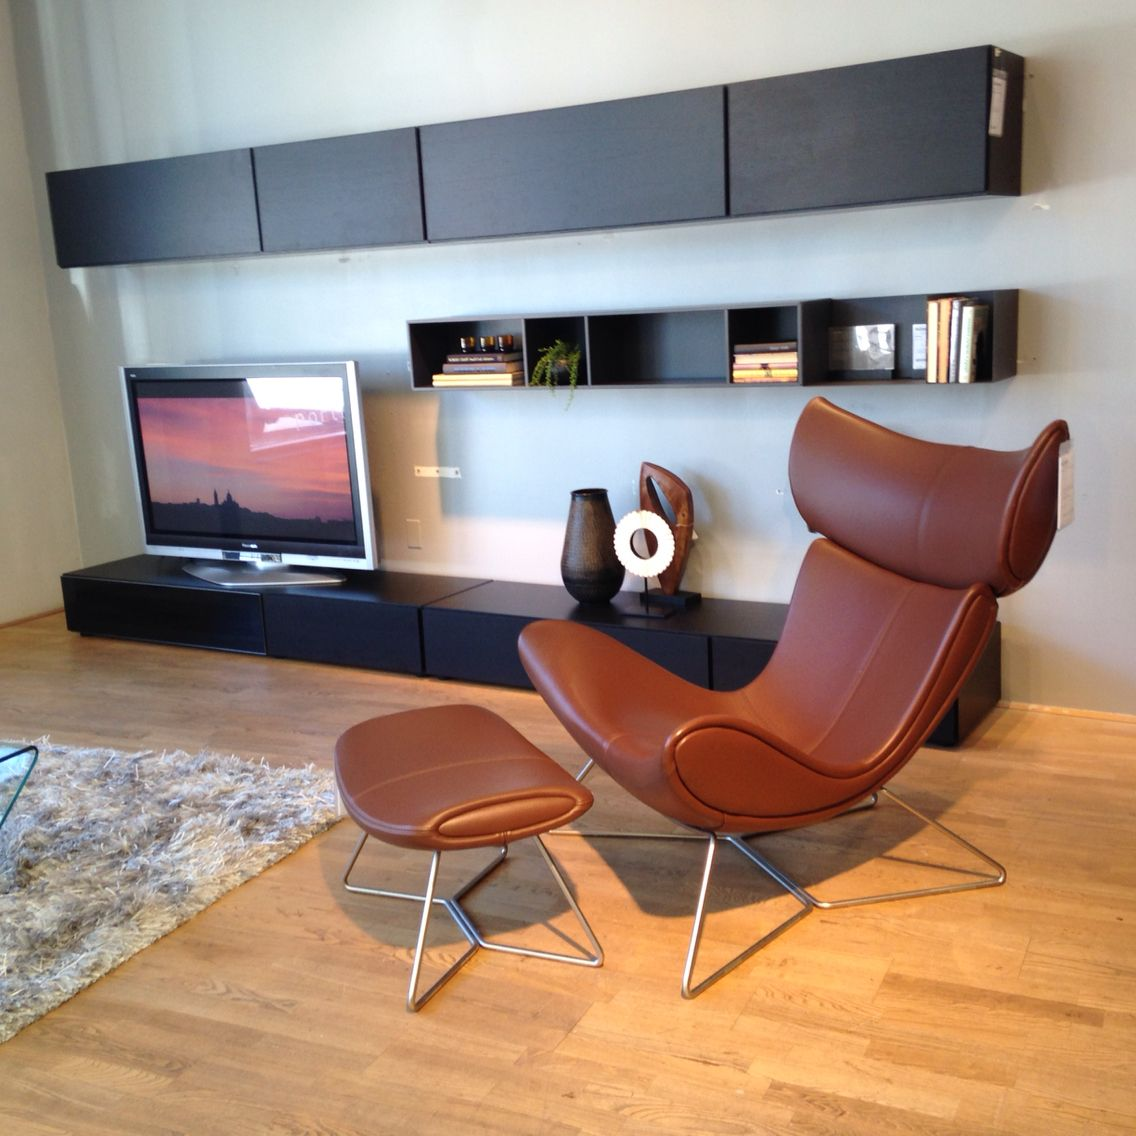 boconcept imola chair and lugano wall system design. Black Bedroom Furniture Sets. Home Design Ideas